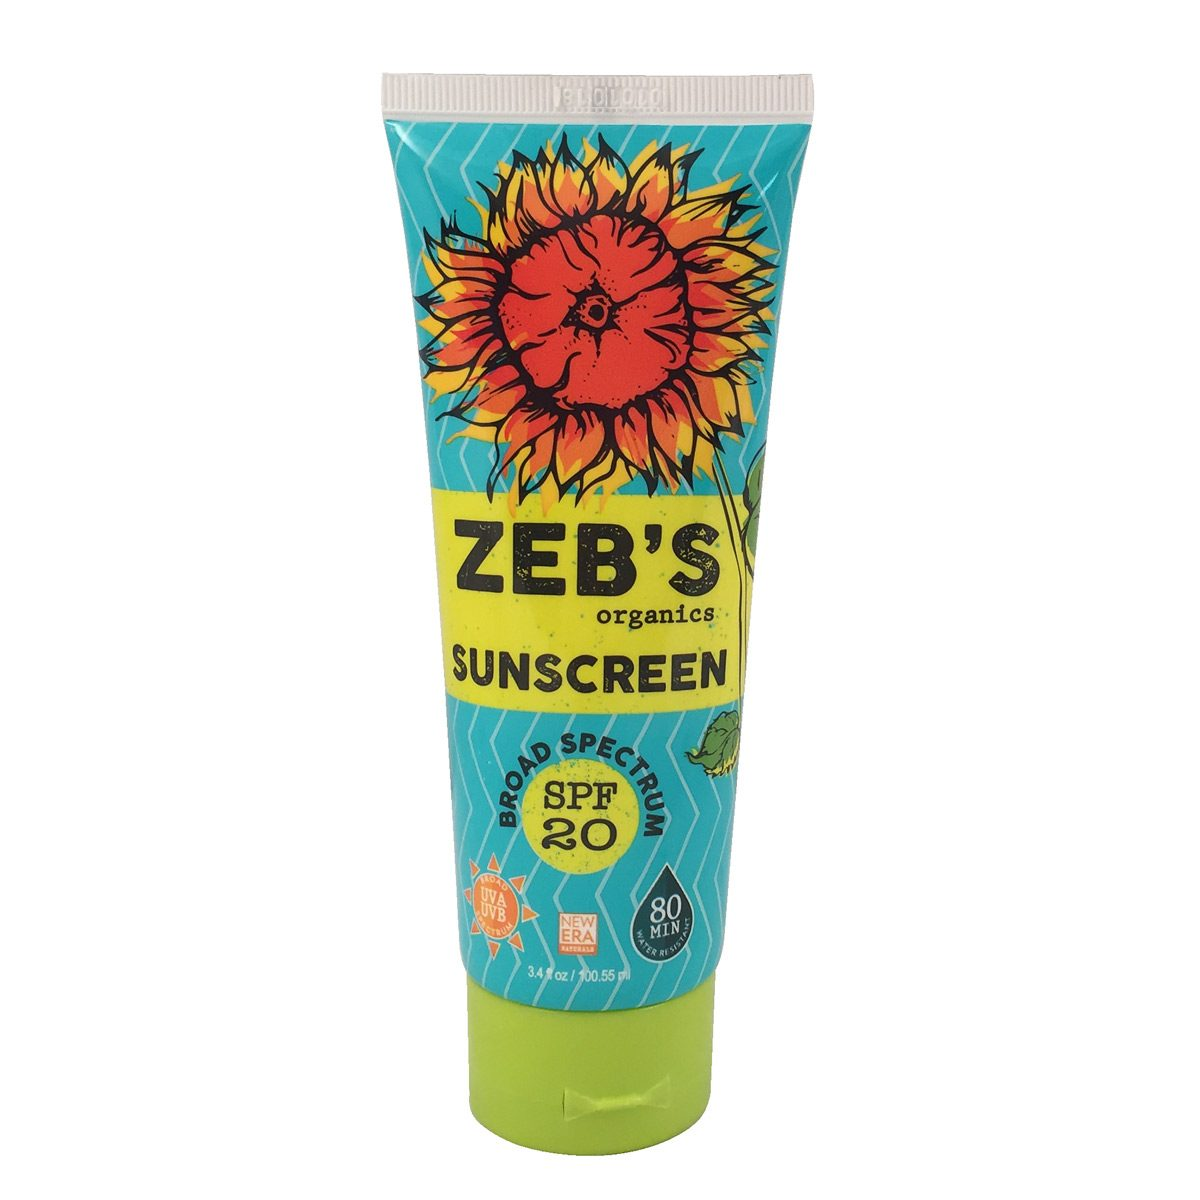 Zeb's sunscreen